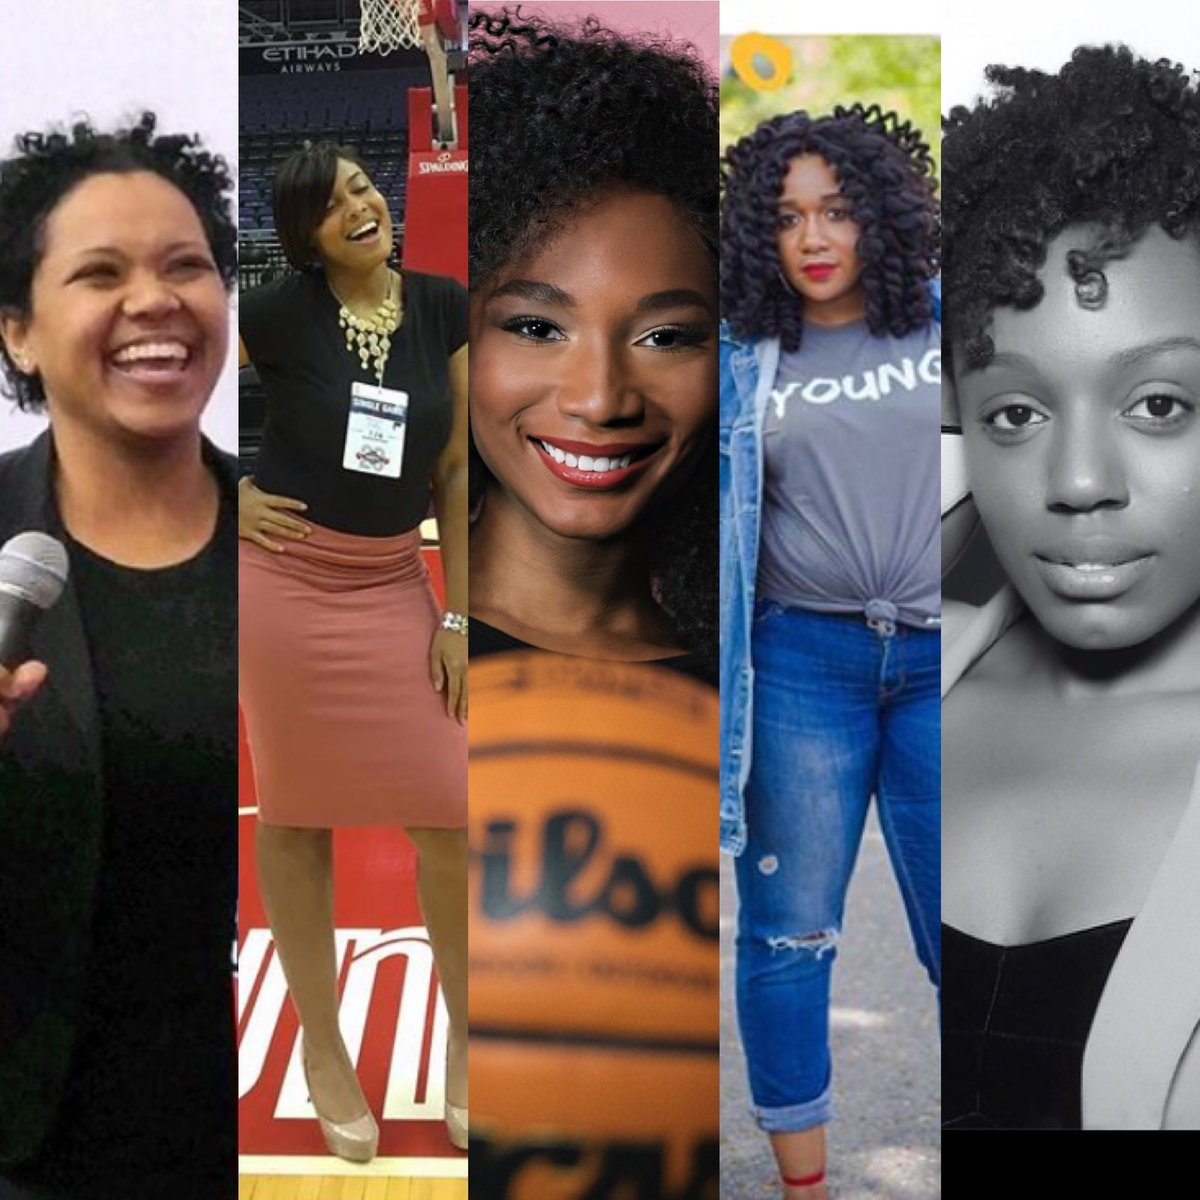 """""""Players of the New School"""" features a powerhouse of black women media influencers known as the """"Minny Tribe""""  @ariivory, @elindsay08, @jasmined_brown, @LoIra_BTW and @princess_street join Jasmine Baker for a chat about the upcoming #WNBA season. https://t.co/WlmAE1WbOx https://t.co/5ISnNFoG4j"""